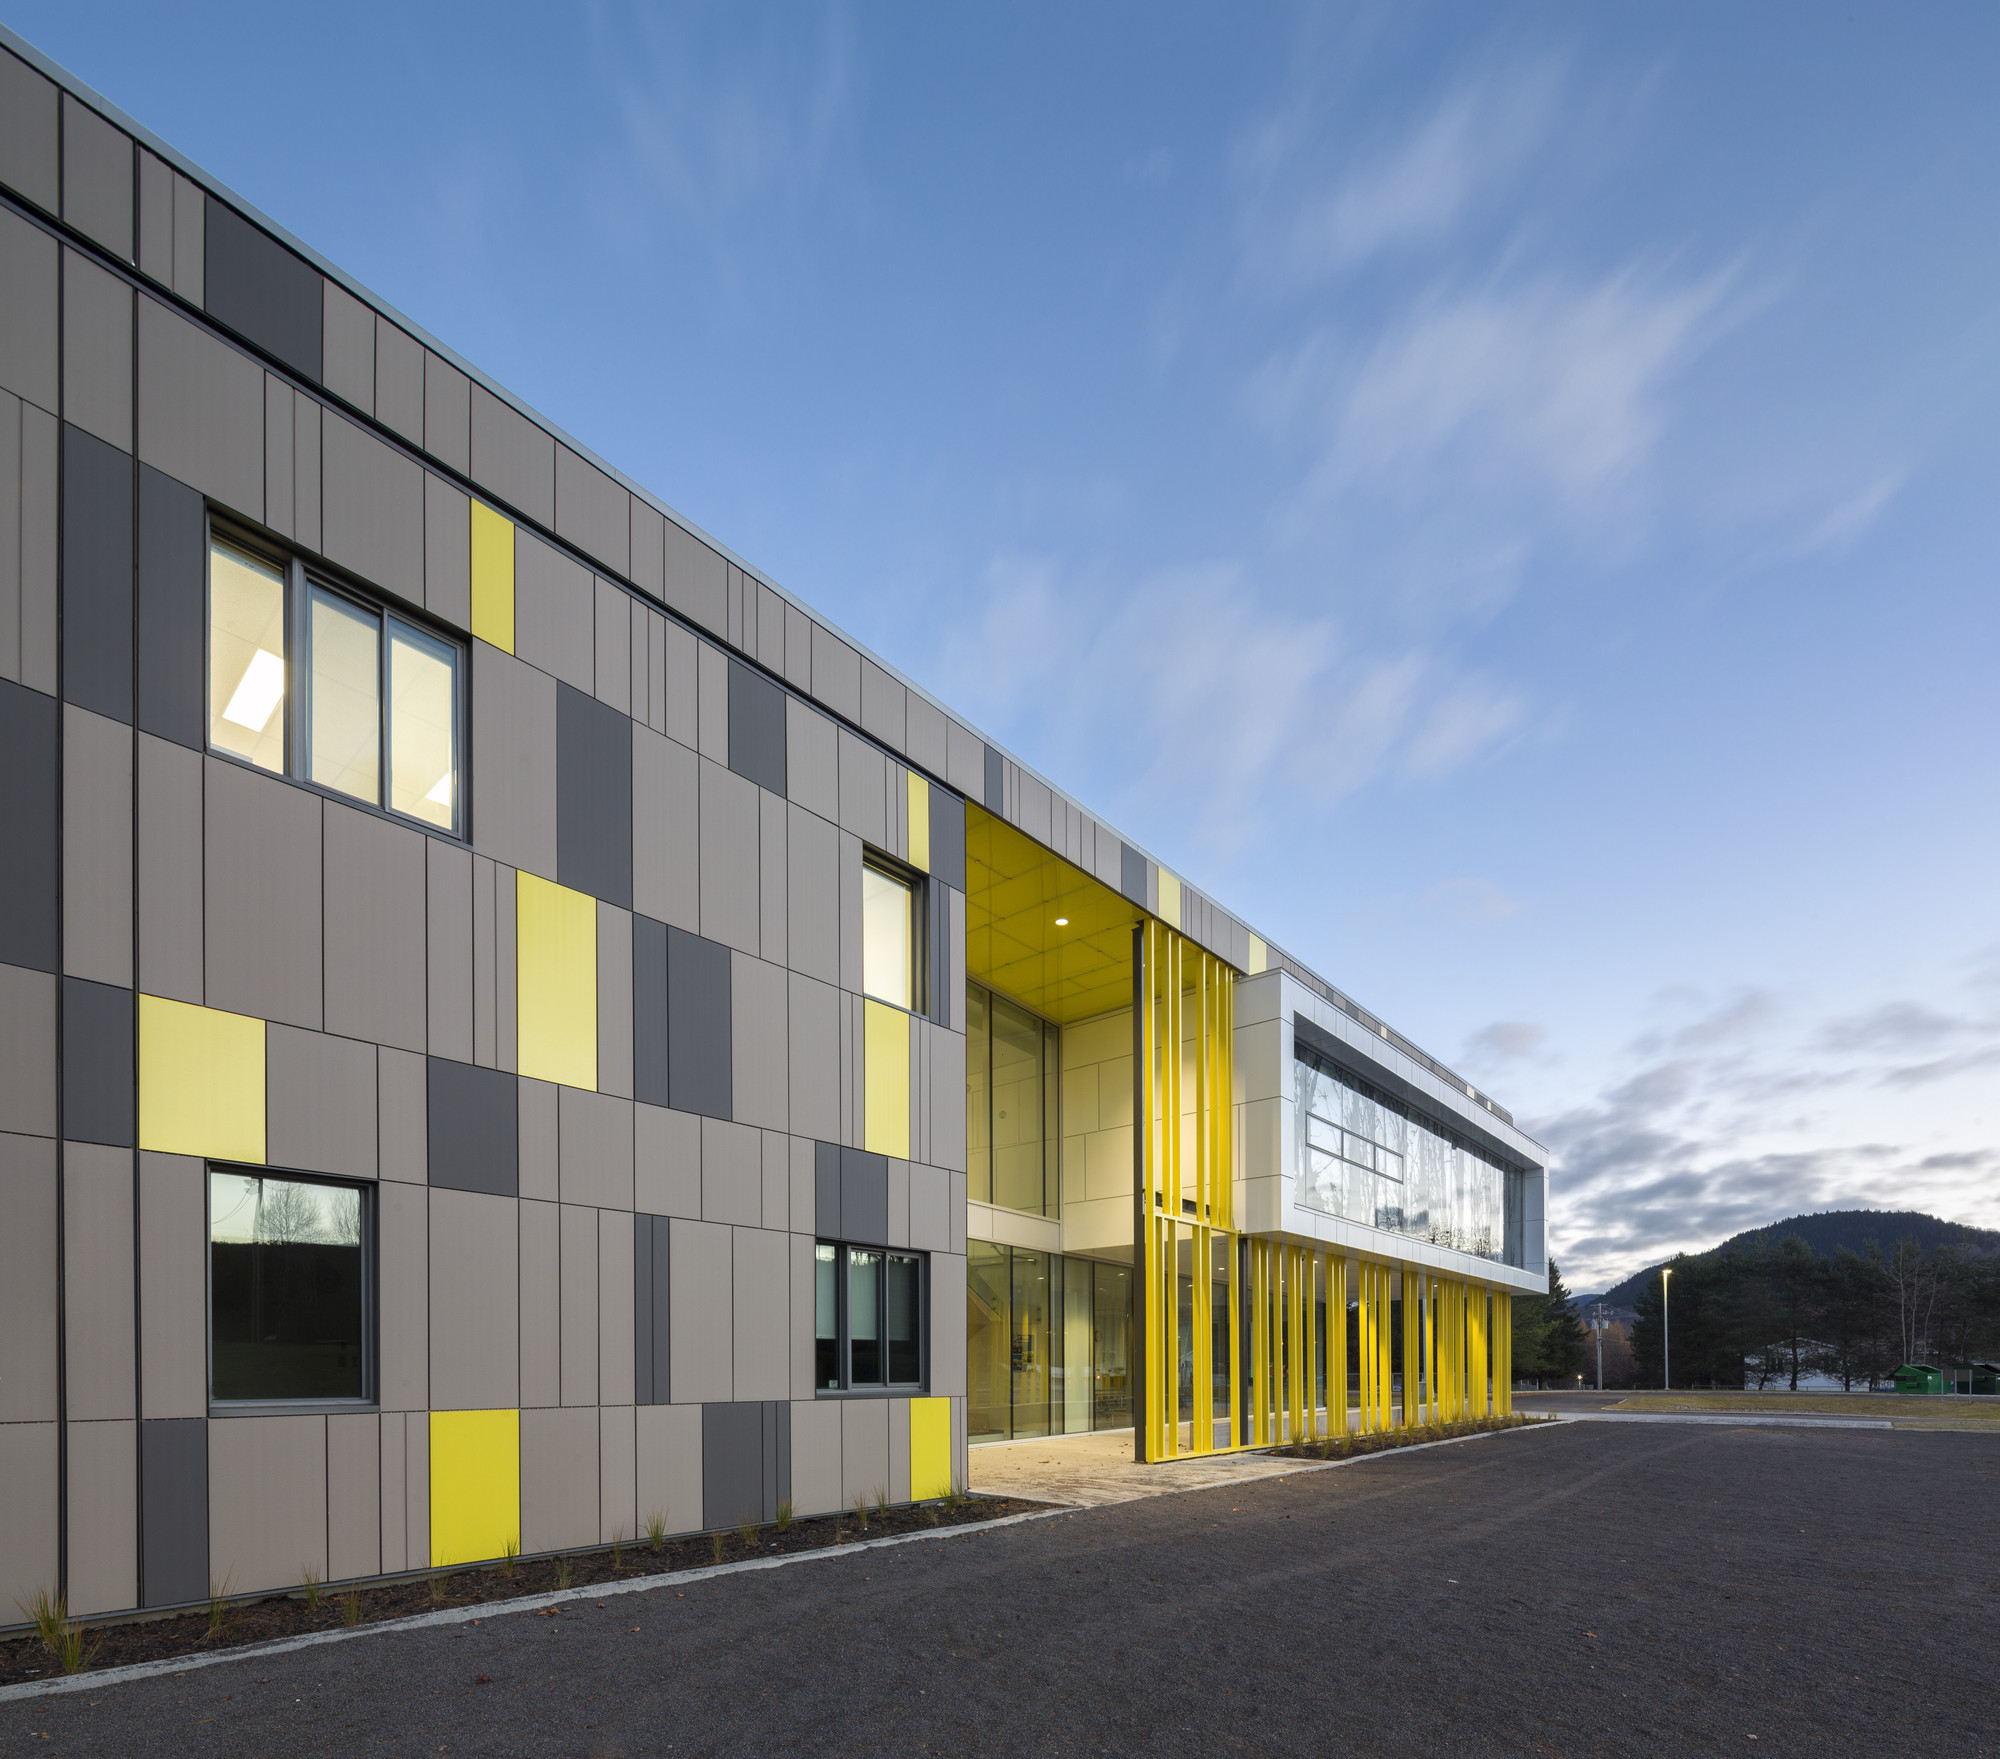 Harfang des neiges primary school ccm2 architectes for School building design